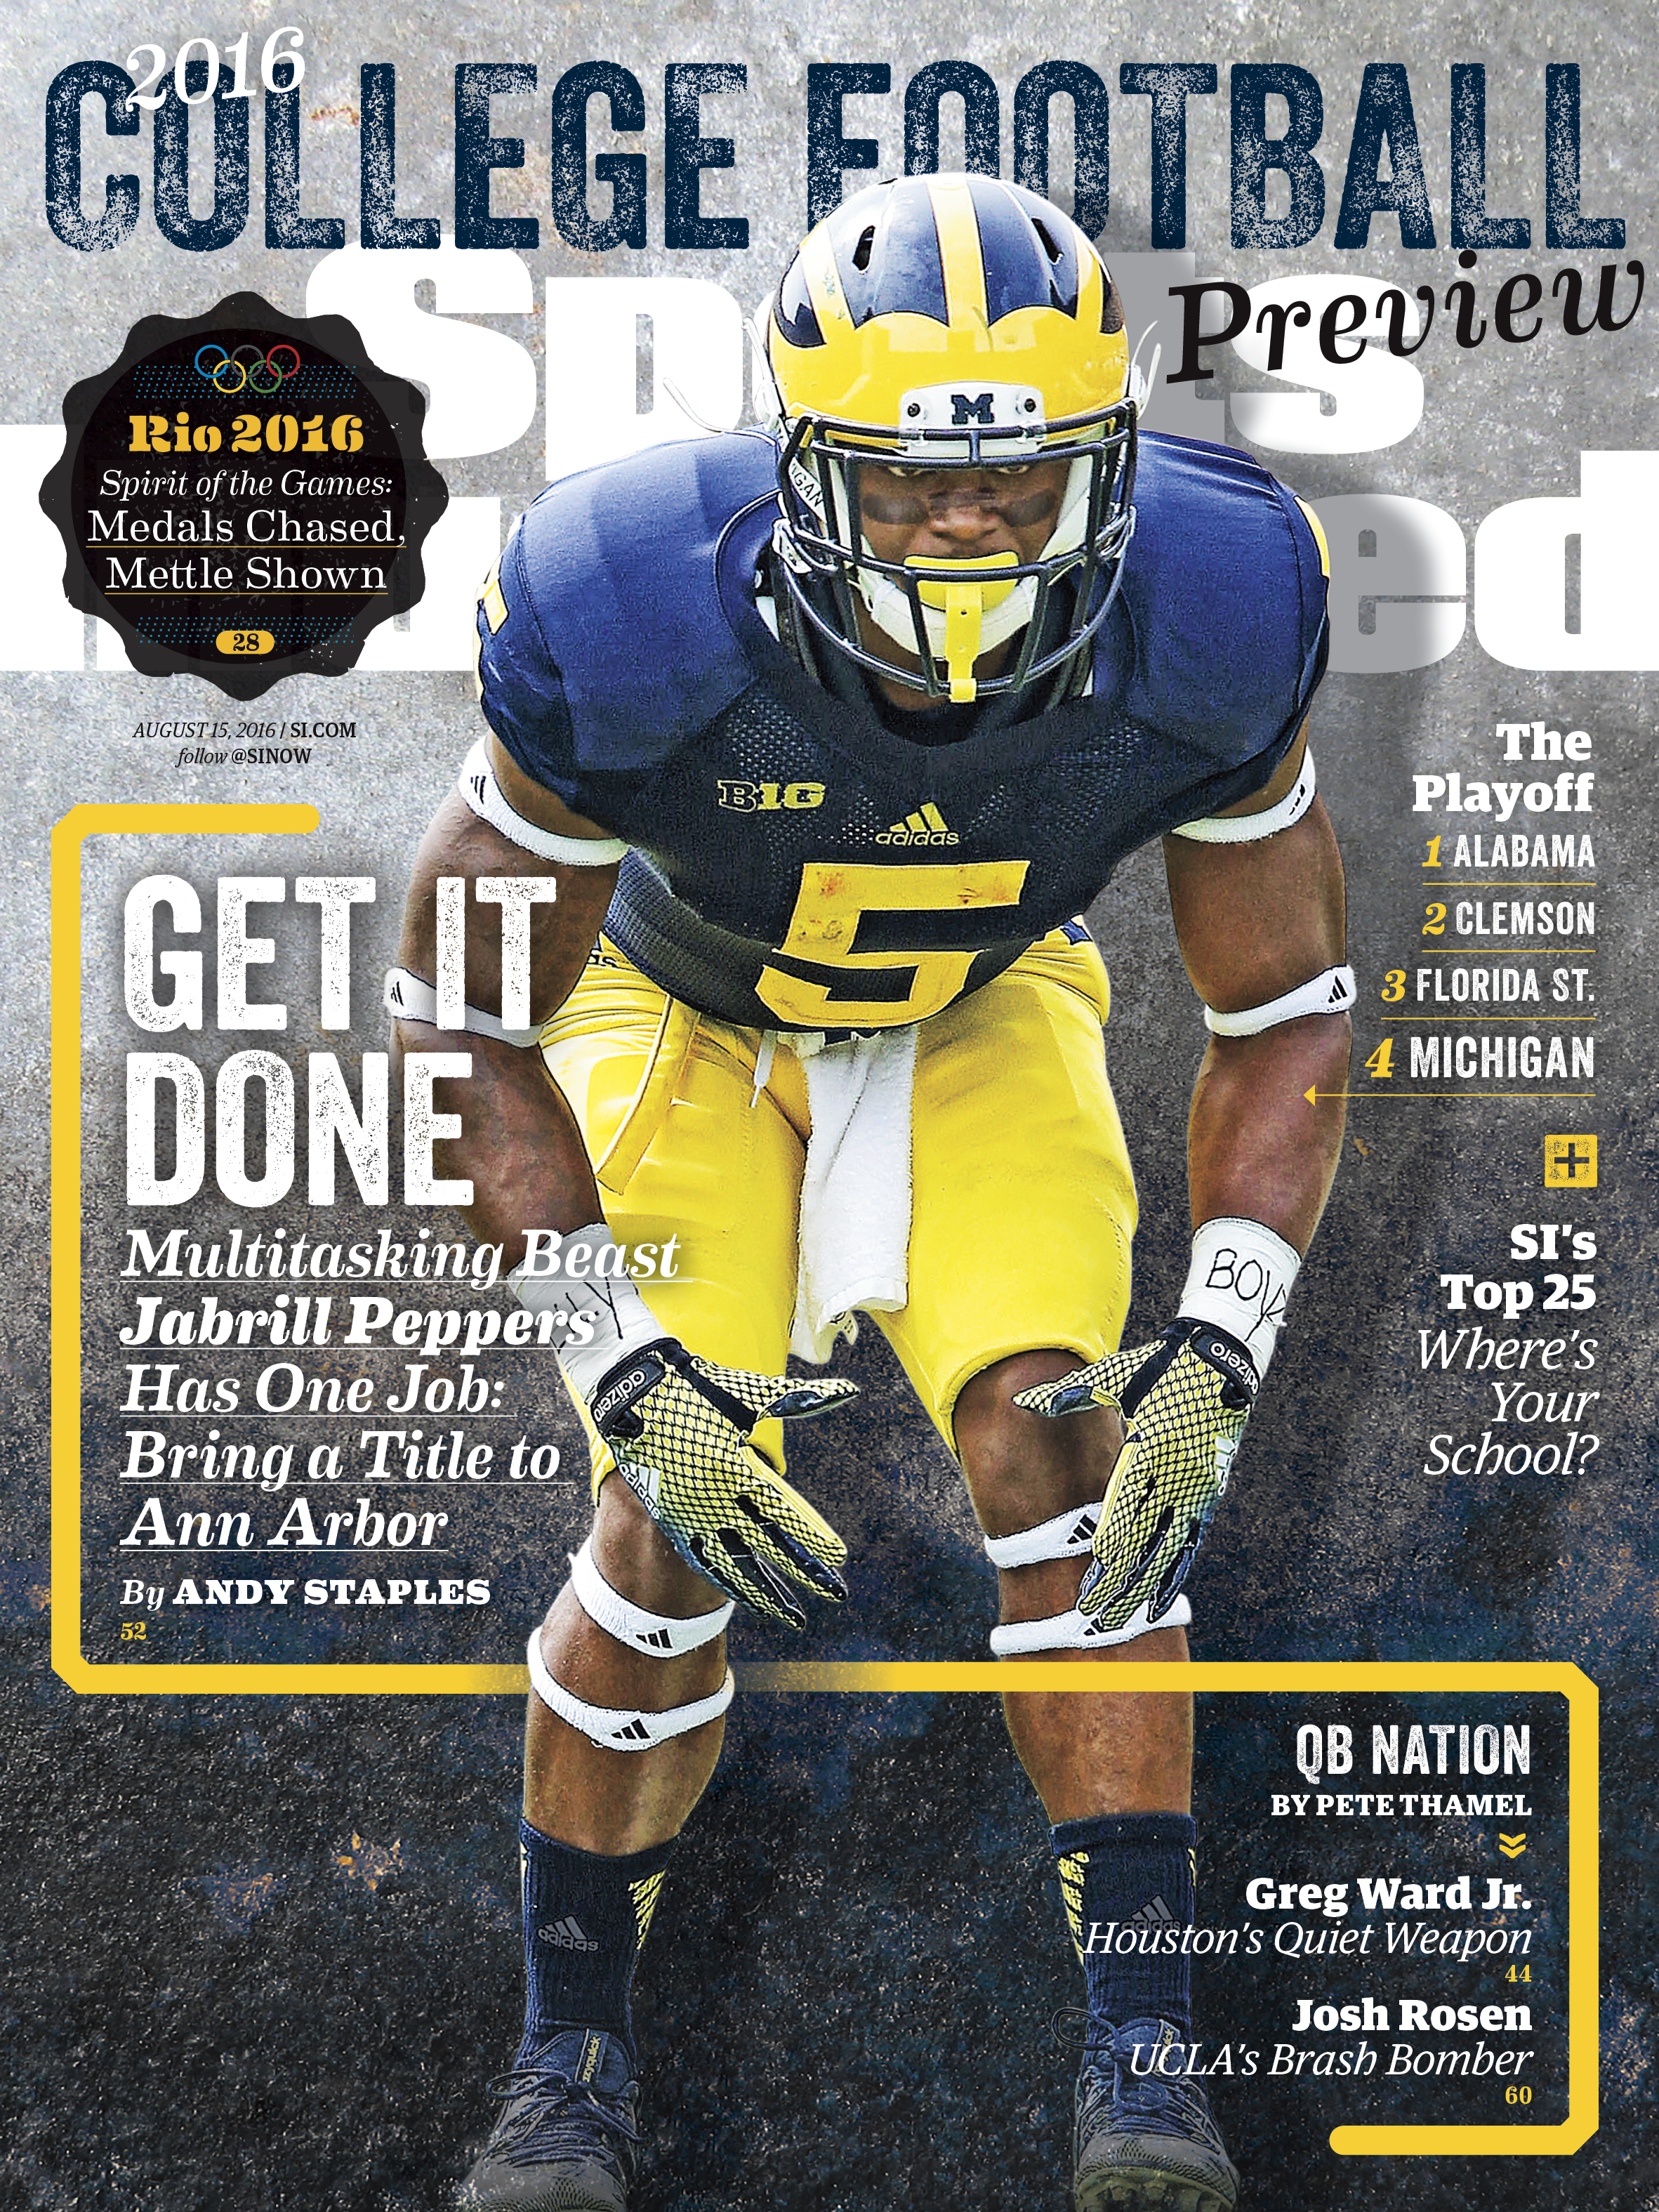 Michigan, Clemson headline SI's college football preview covers | SI com